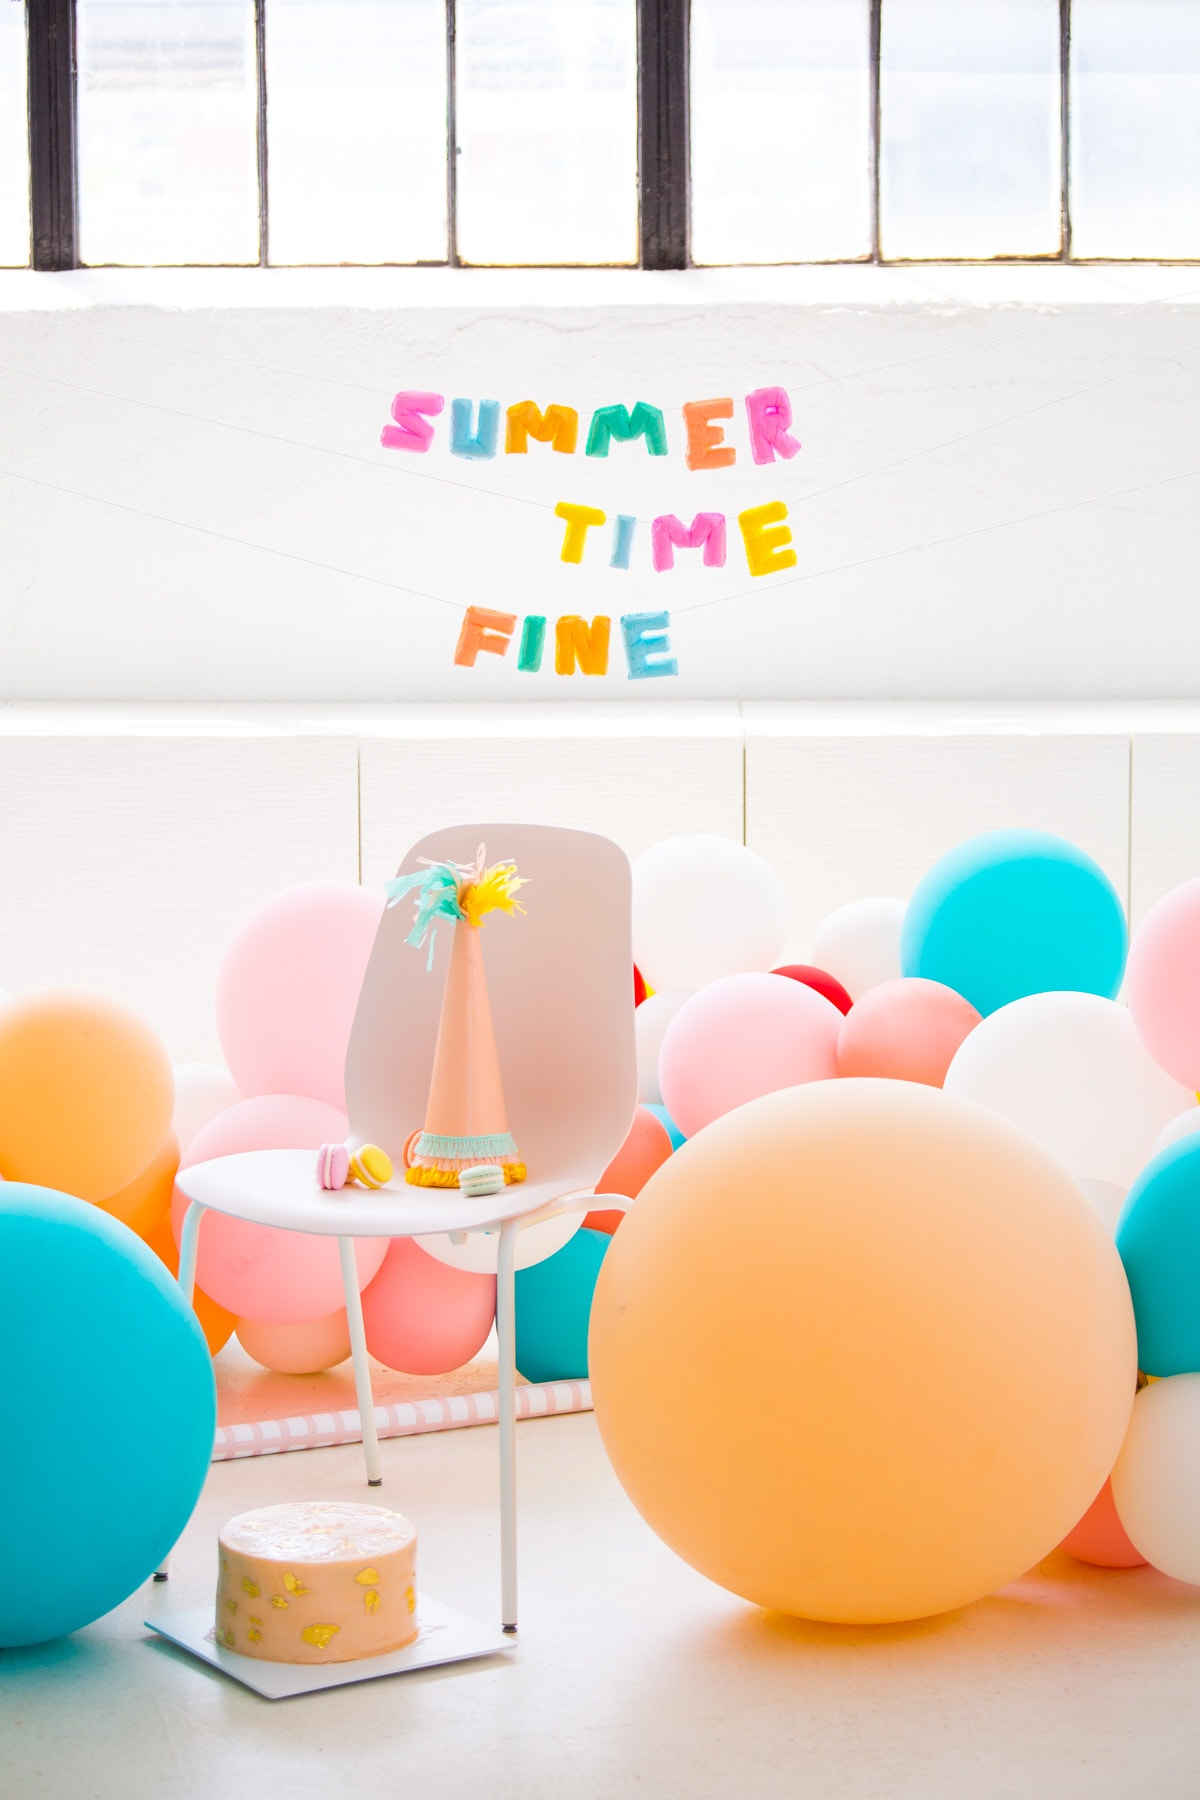 summer time fine! letter balloons that won't deflate - Faux Balloon DIY Letter Garland by Houston lifestyle blogger Ashley Rose of Sugar and Cloth #diy #balloons #balloongarland #garland #decor #party #ideas #howto